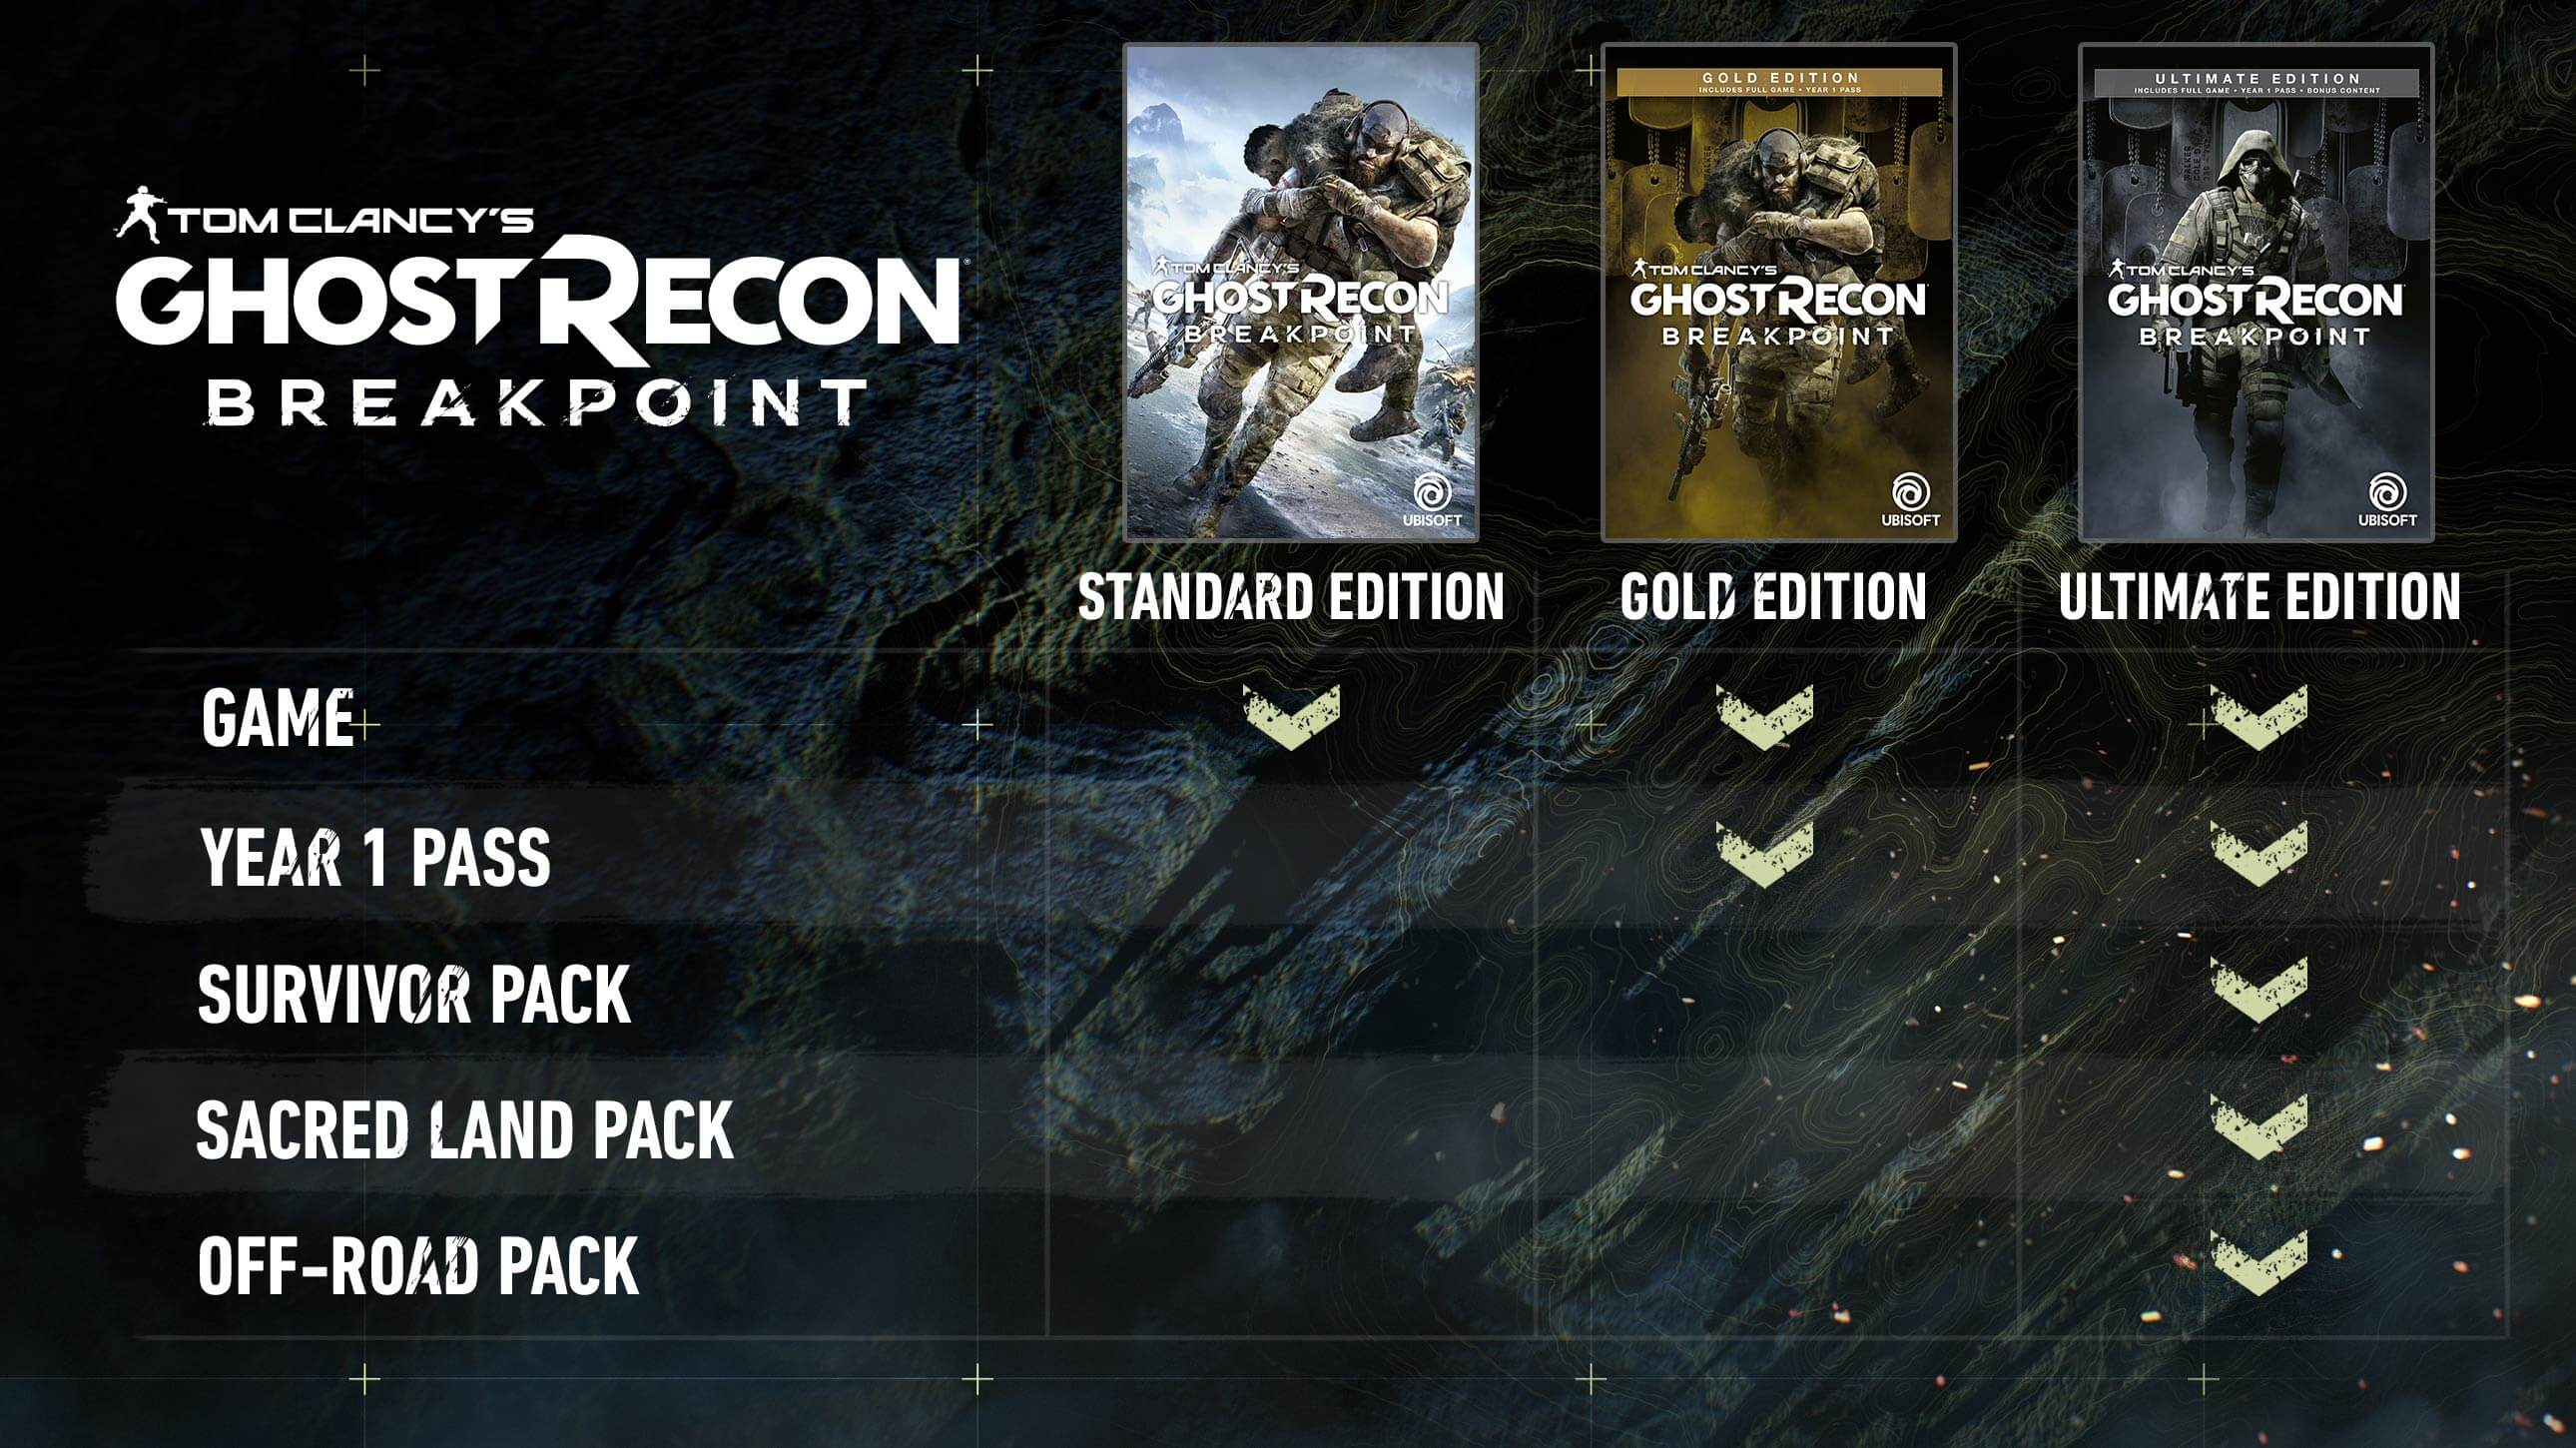 Diesel%2Fproduct%2Fghost-recon-breakpoin